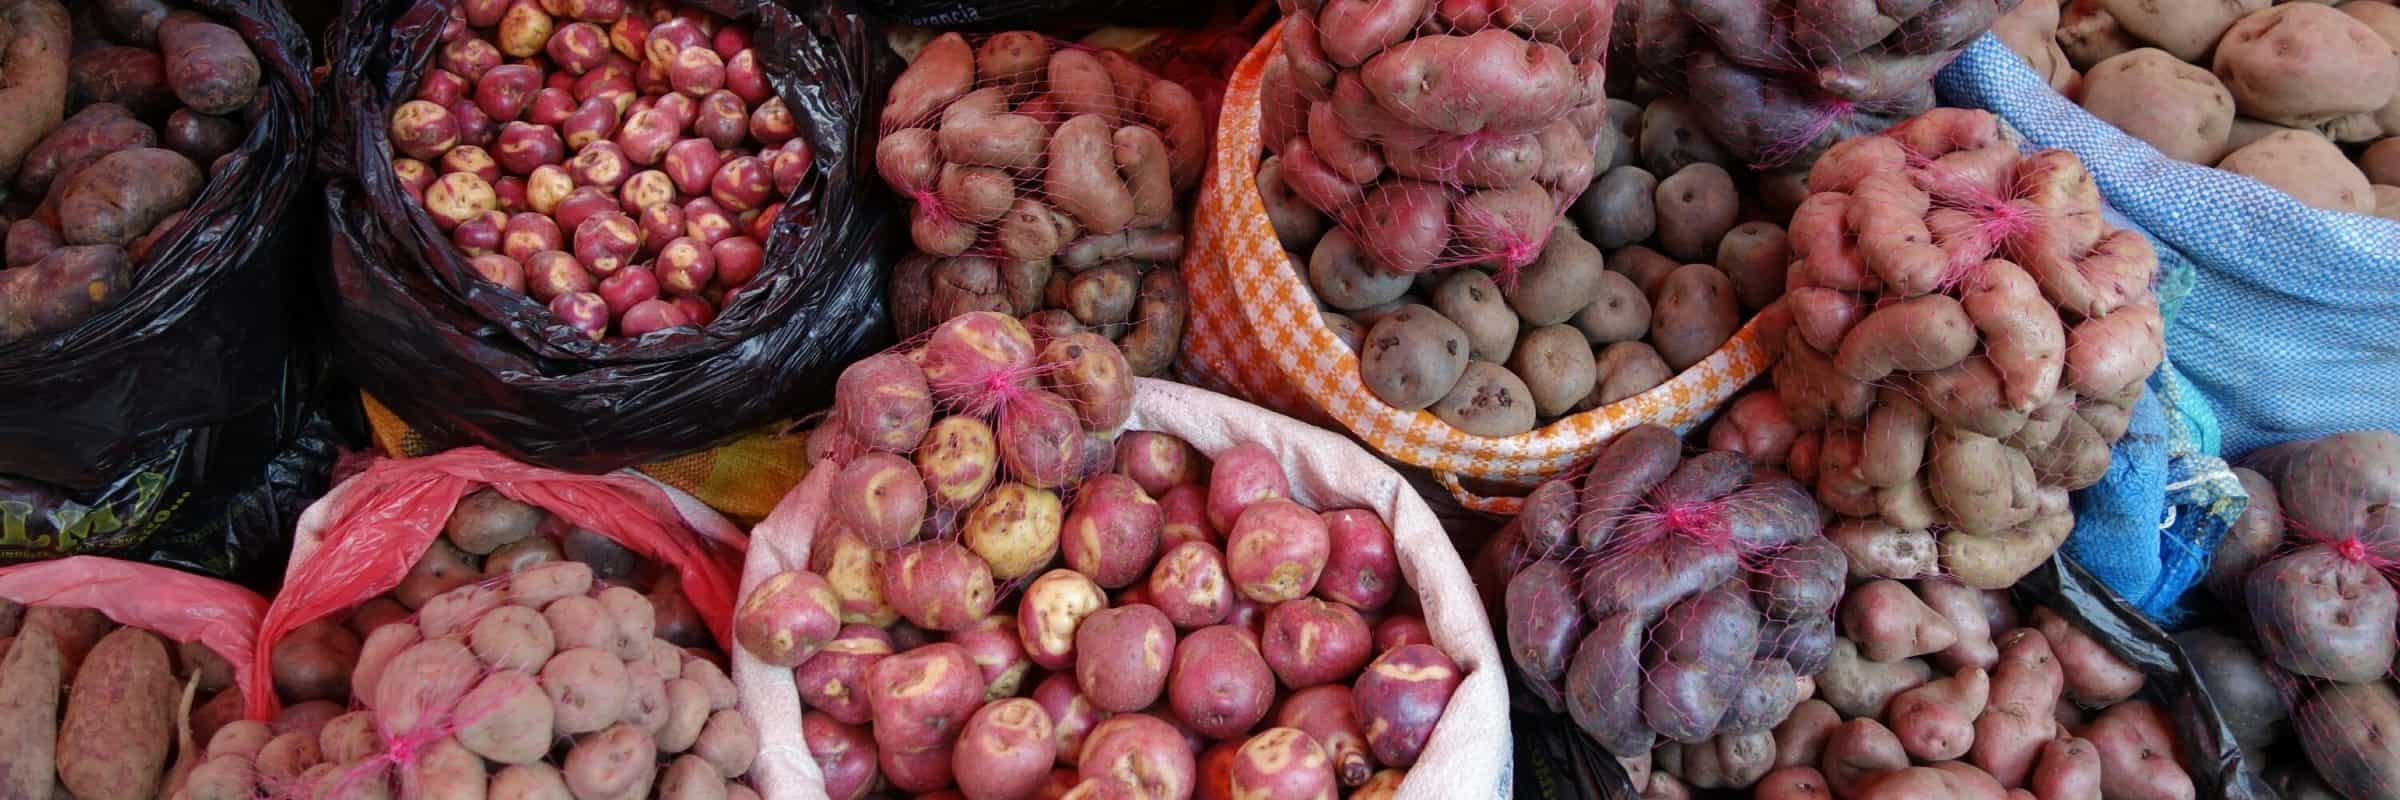 Potatoes at Mercado Rodriguez, La Paz, Bolivia